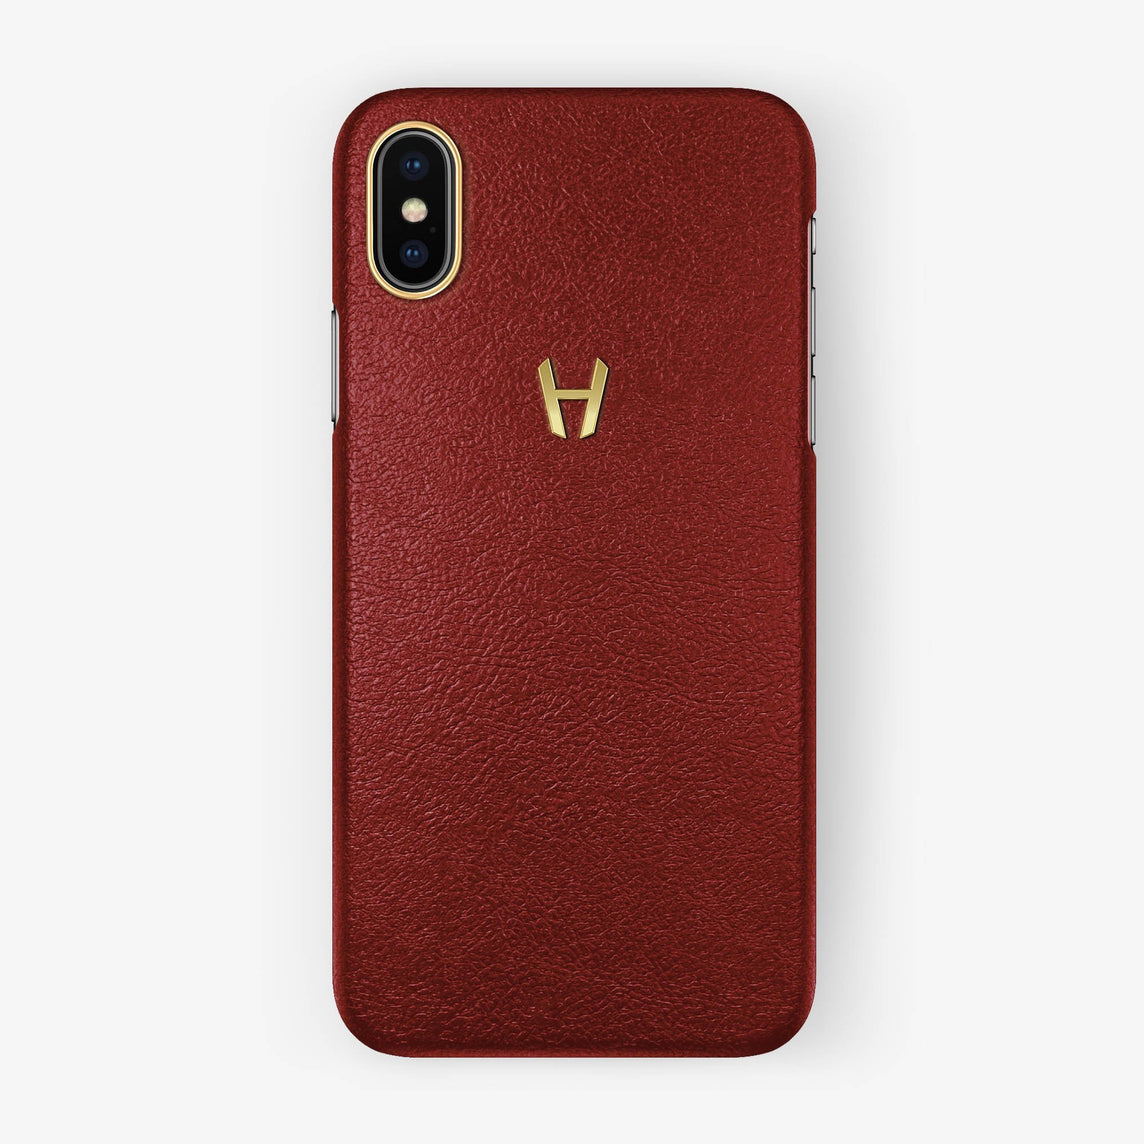 Red Calfskin iPhone Case for iPhone X finishing yellow gold - Hadoro Luxury Cases